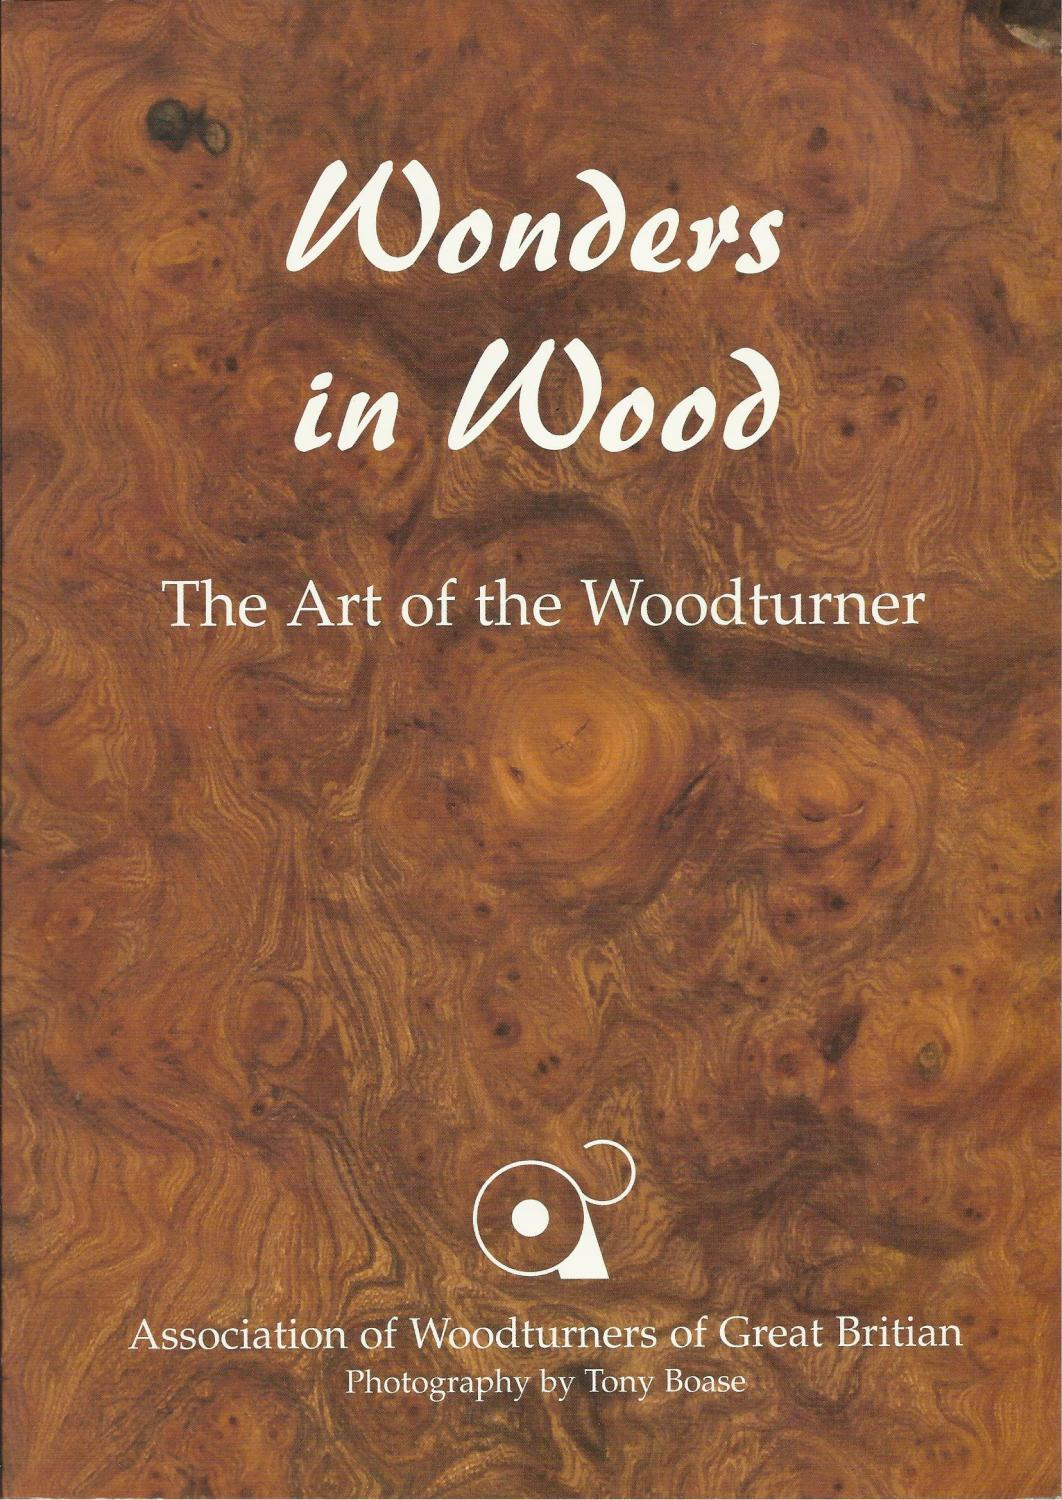 WONDERS IN WOOD The Art of the Woodturner.